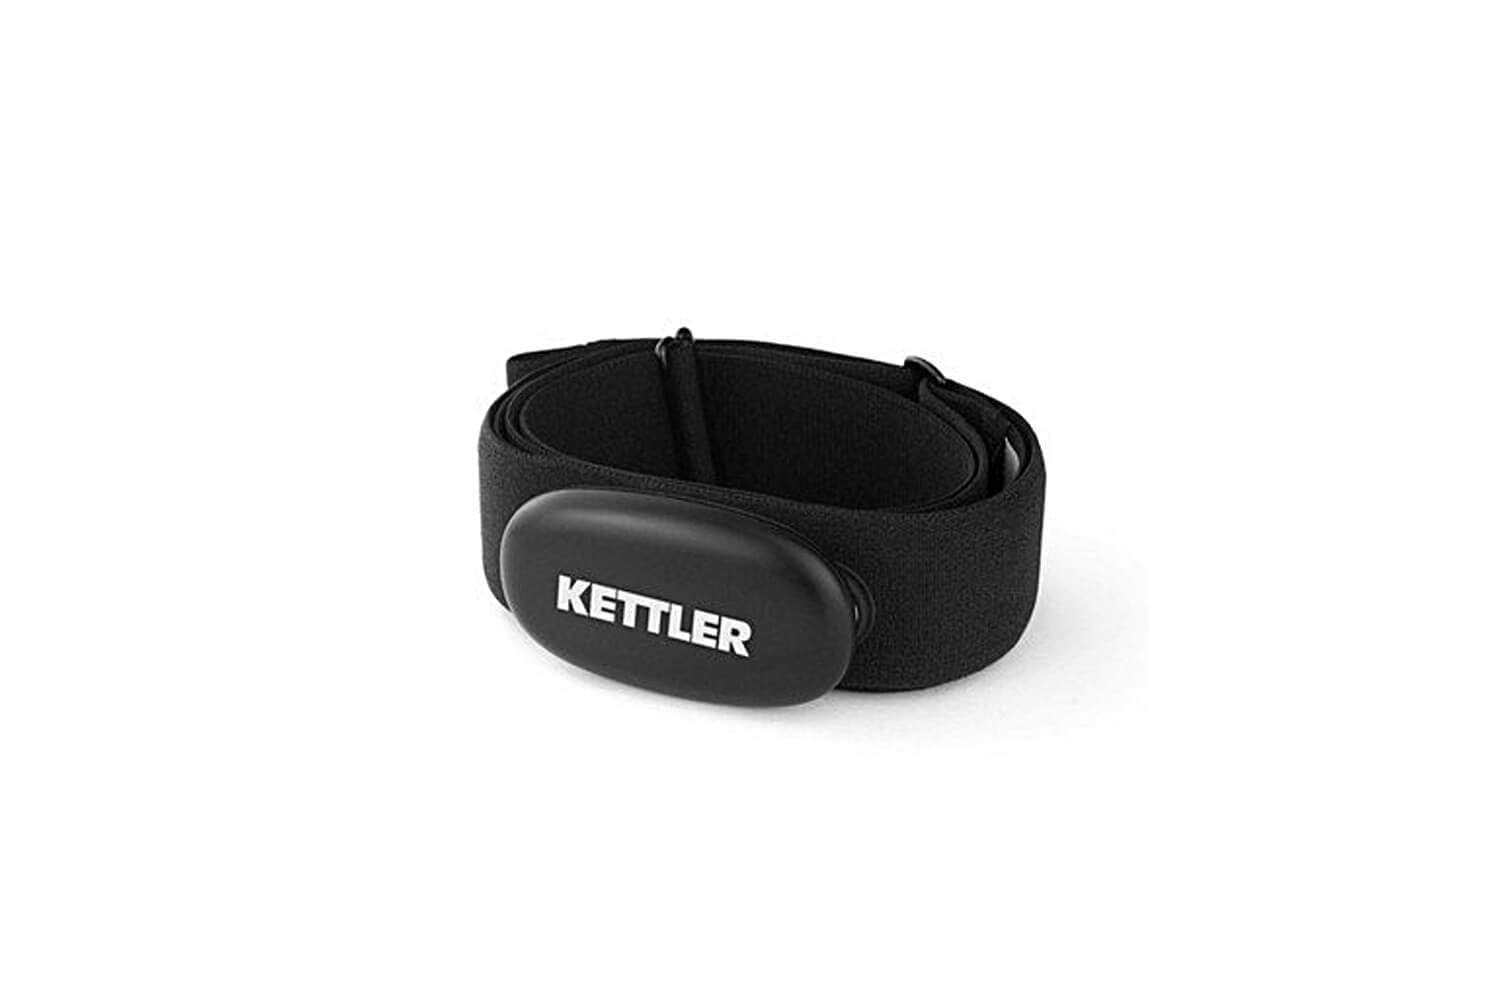 Kettler Brustgurt Bluetooth